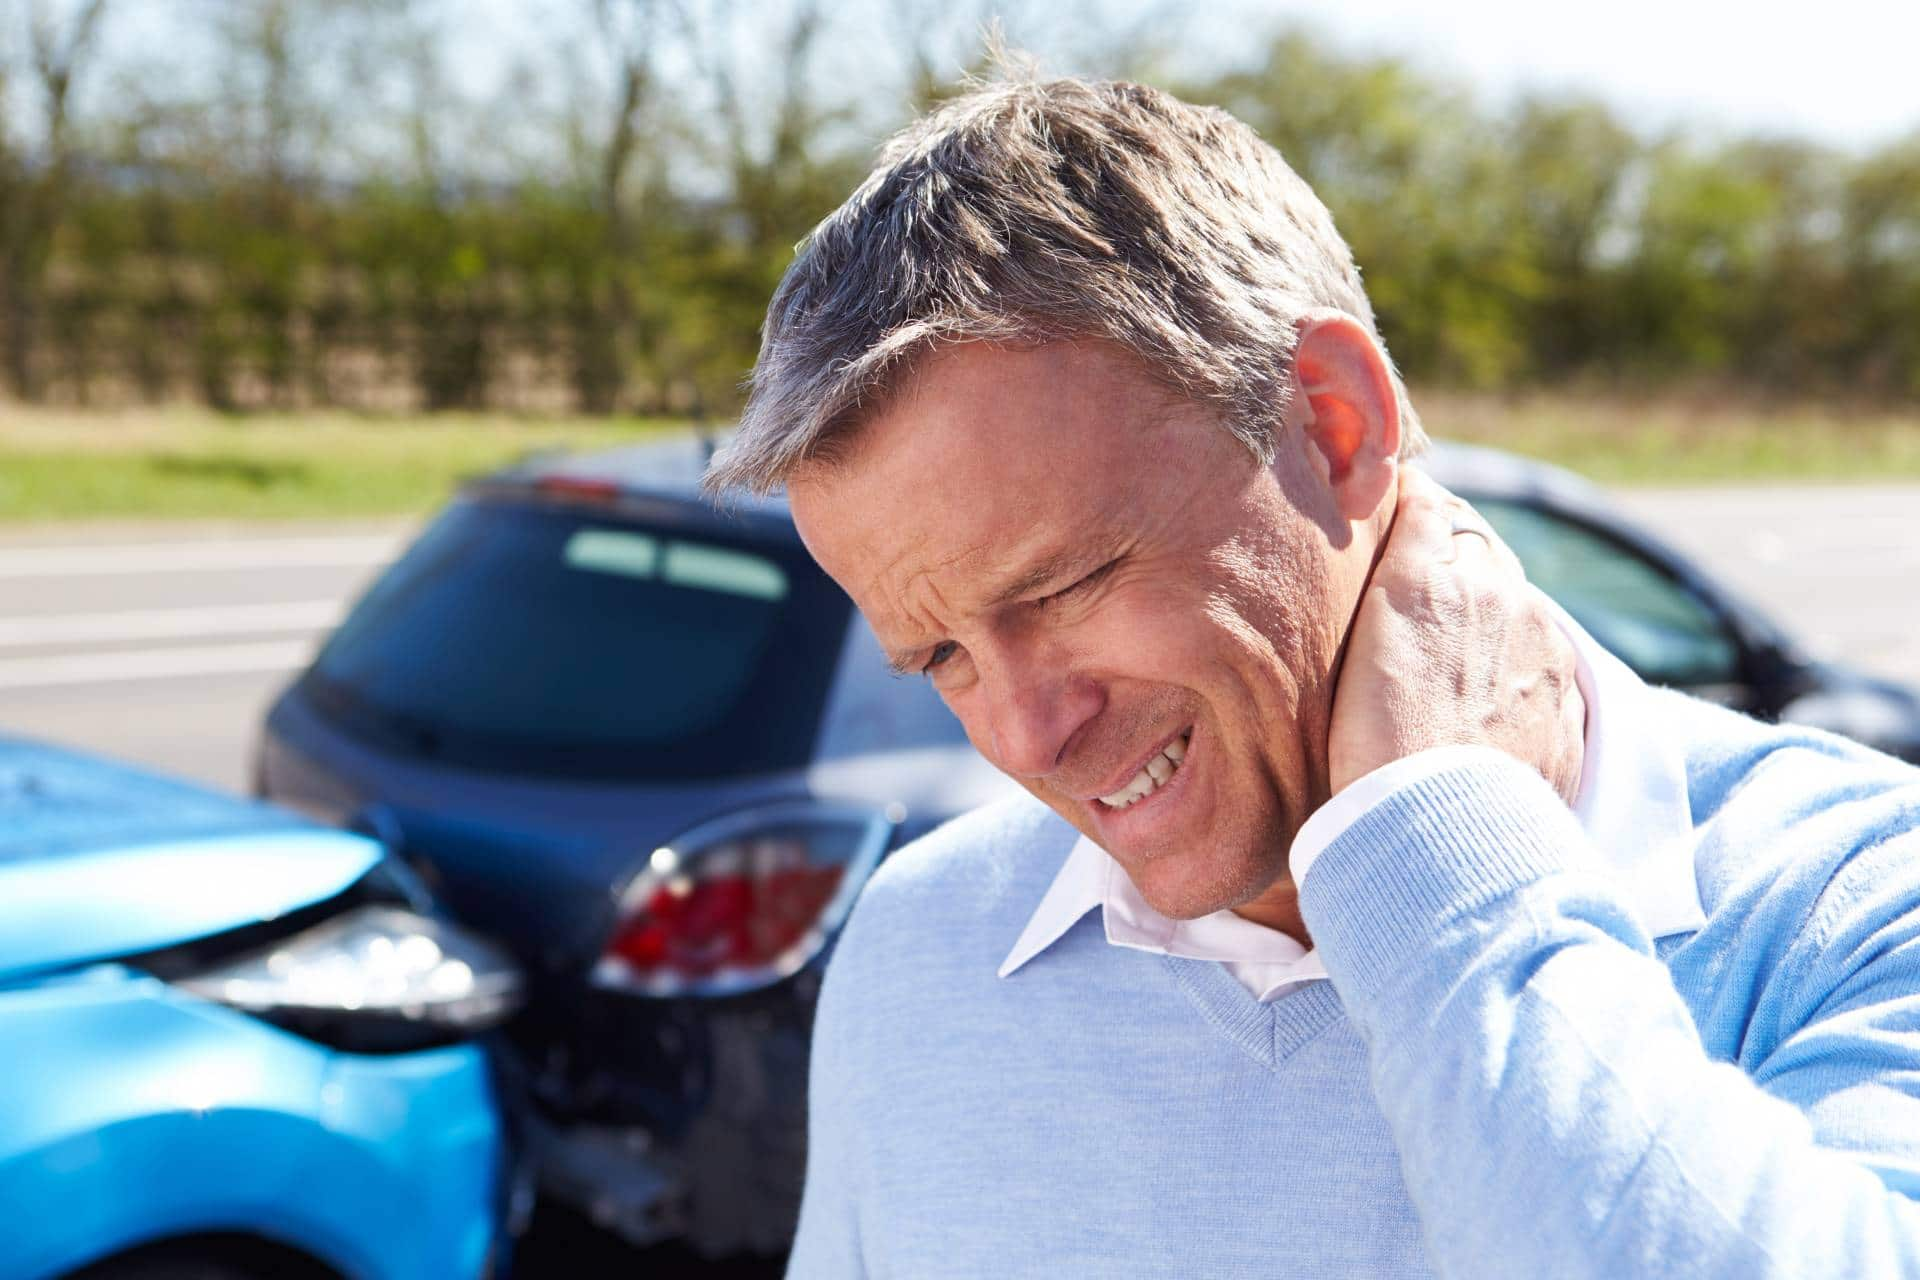 Hurt in a car accident? Schedule a free consultation with our personal injury lawyers at the Angell Law Firm in Atlantic Station.